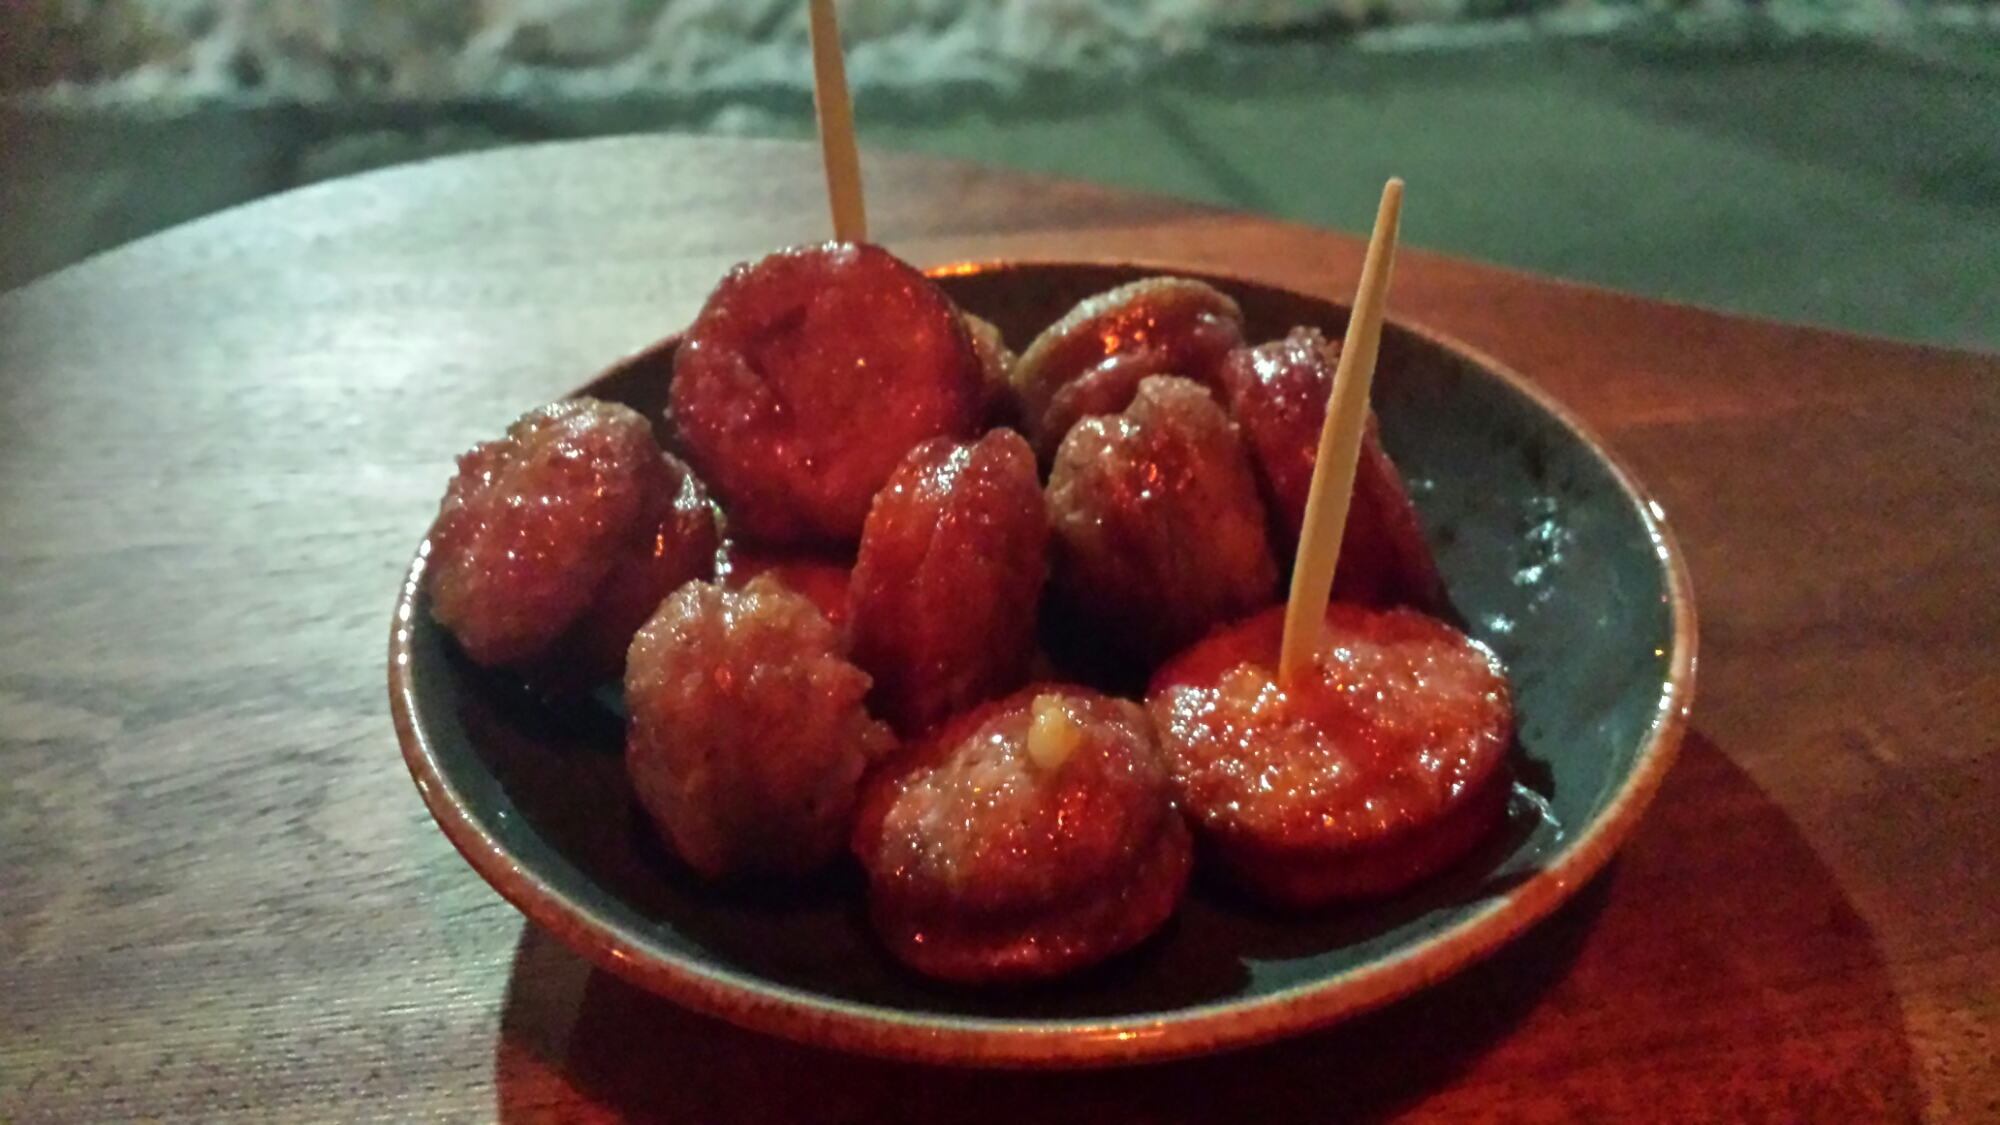 A bowl of sausage pieces with toothpick sticking out